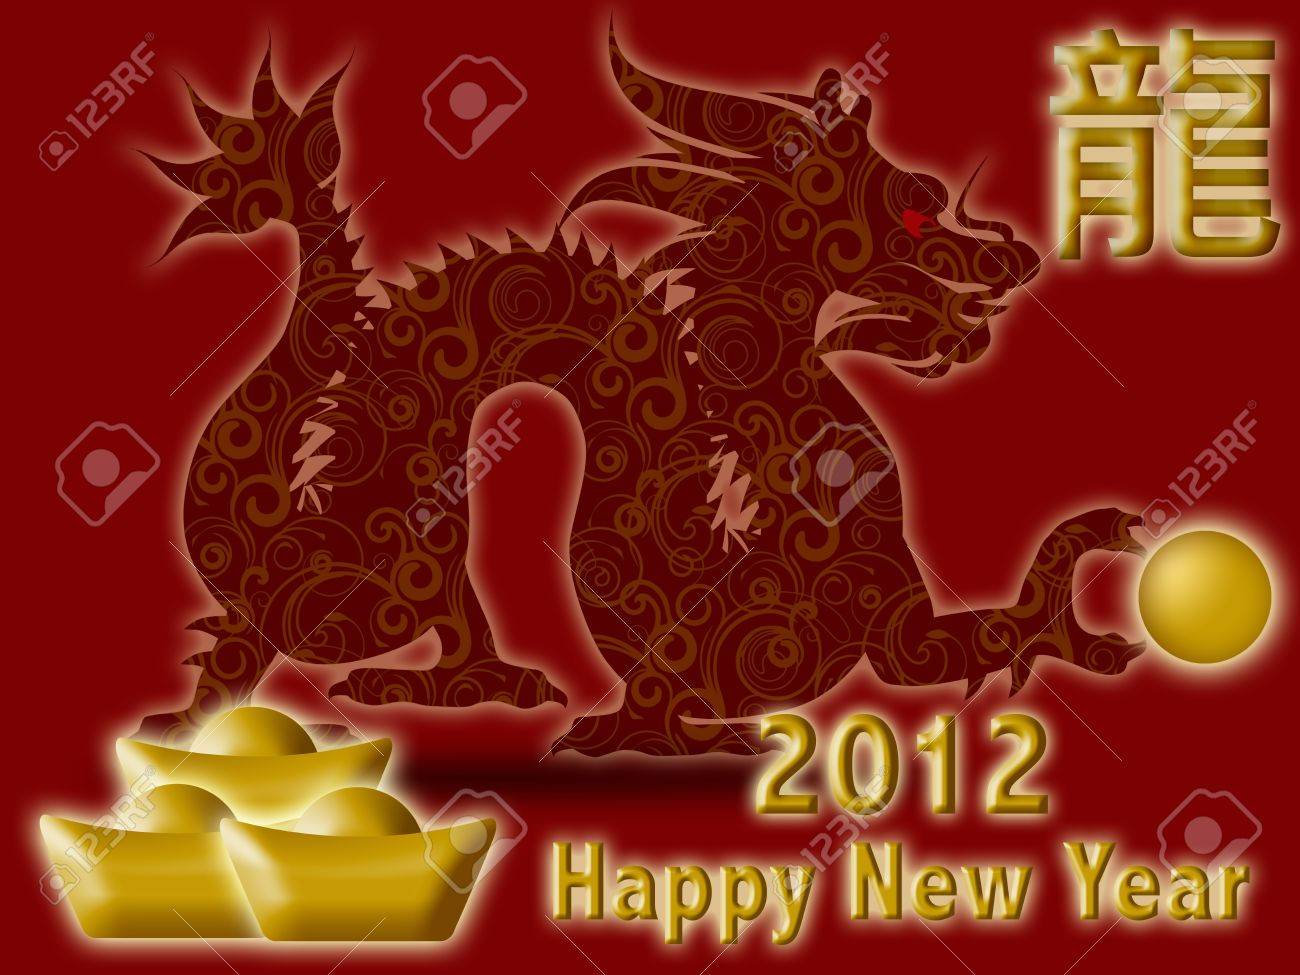 happy chinese new year 2012 with dragon and calligraphy symbol illustration on red stock photo - Chinese New Year 2012